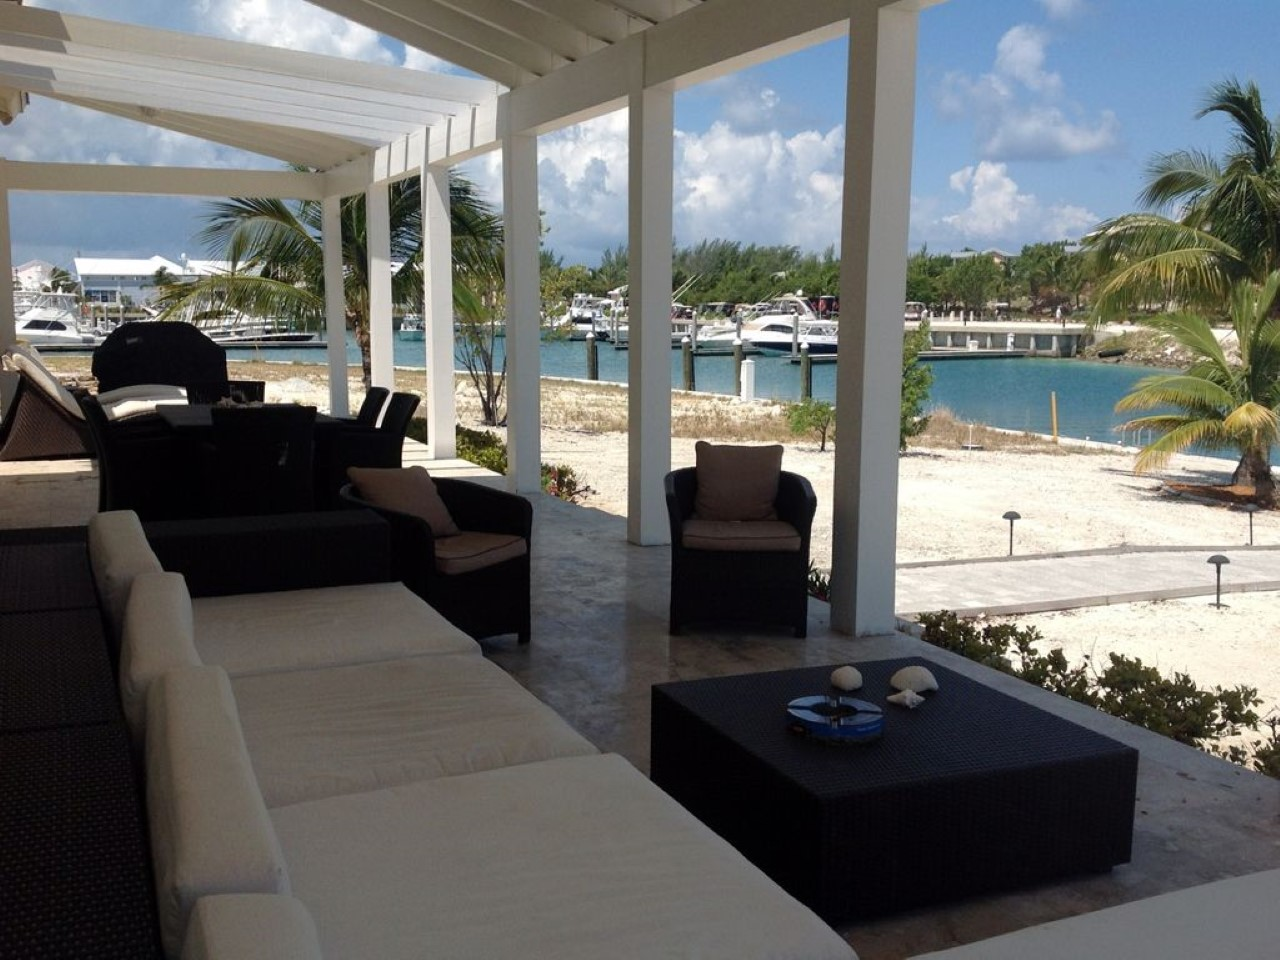 bimini bay private island home